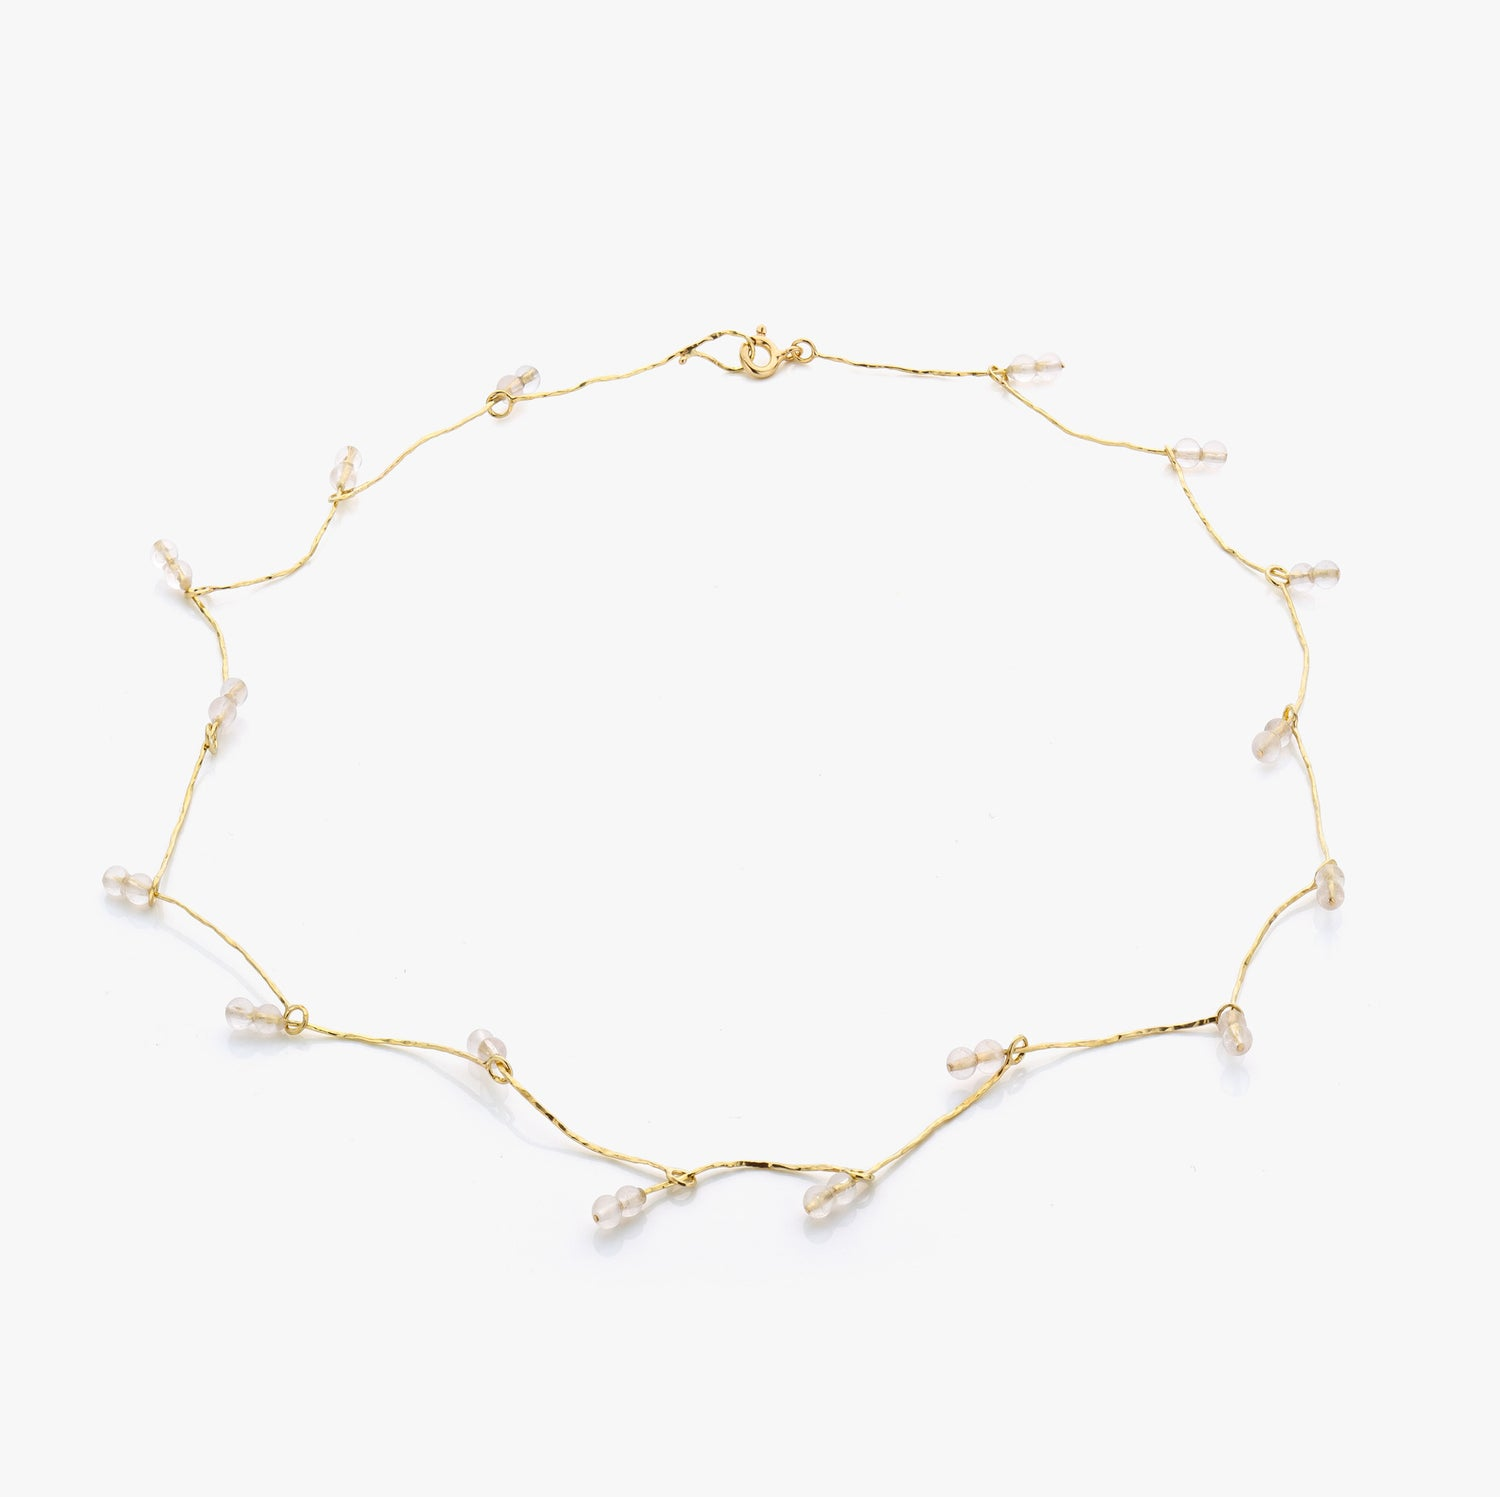 Image of necklace in gold and rosequartz - ketting in goud en rozenkwarts